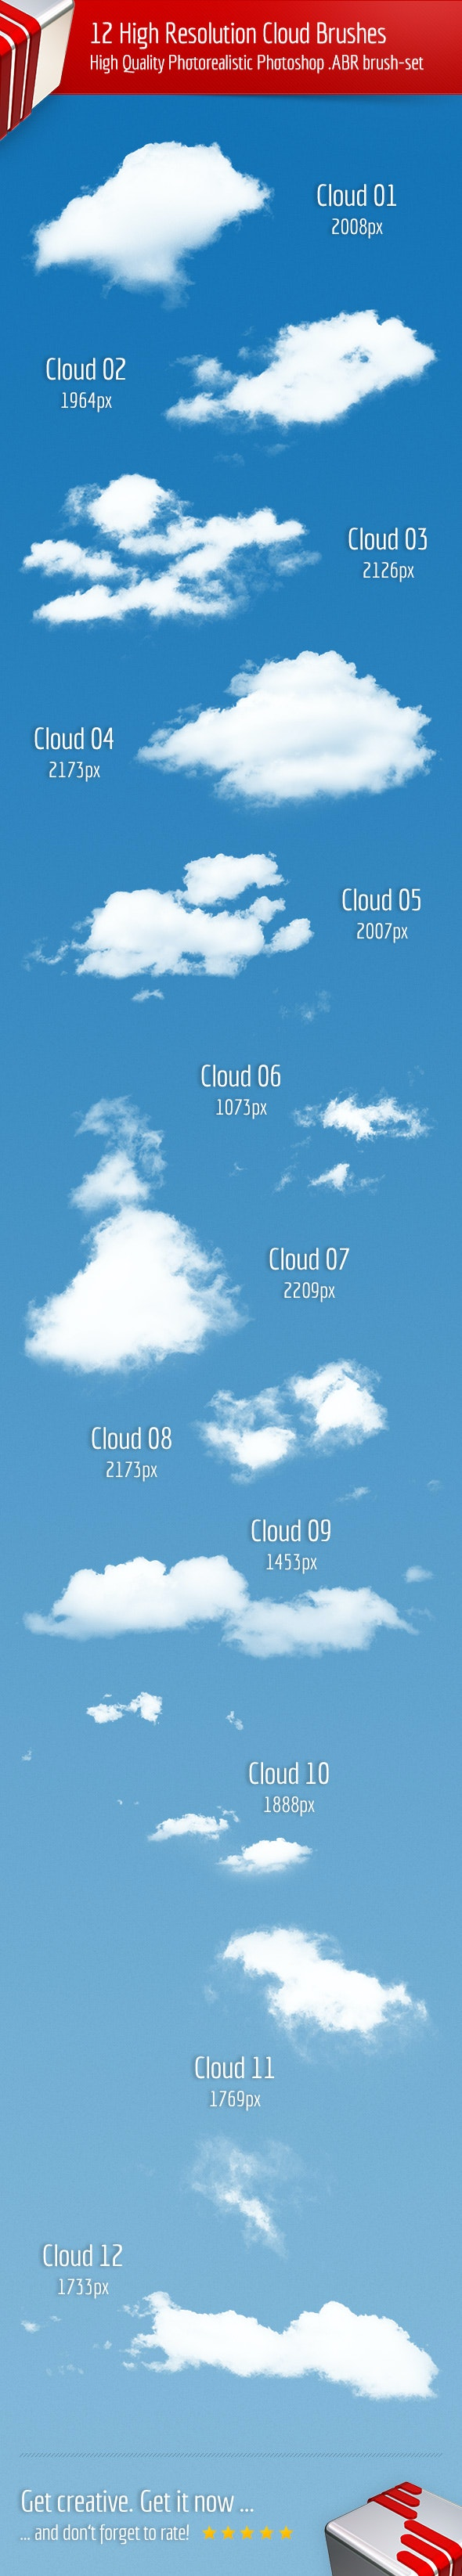 12 High Resolution Cloud Brushes - Brushes Photoshop